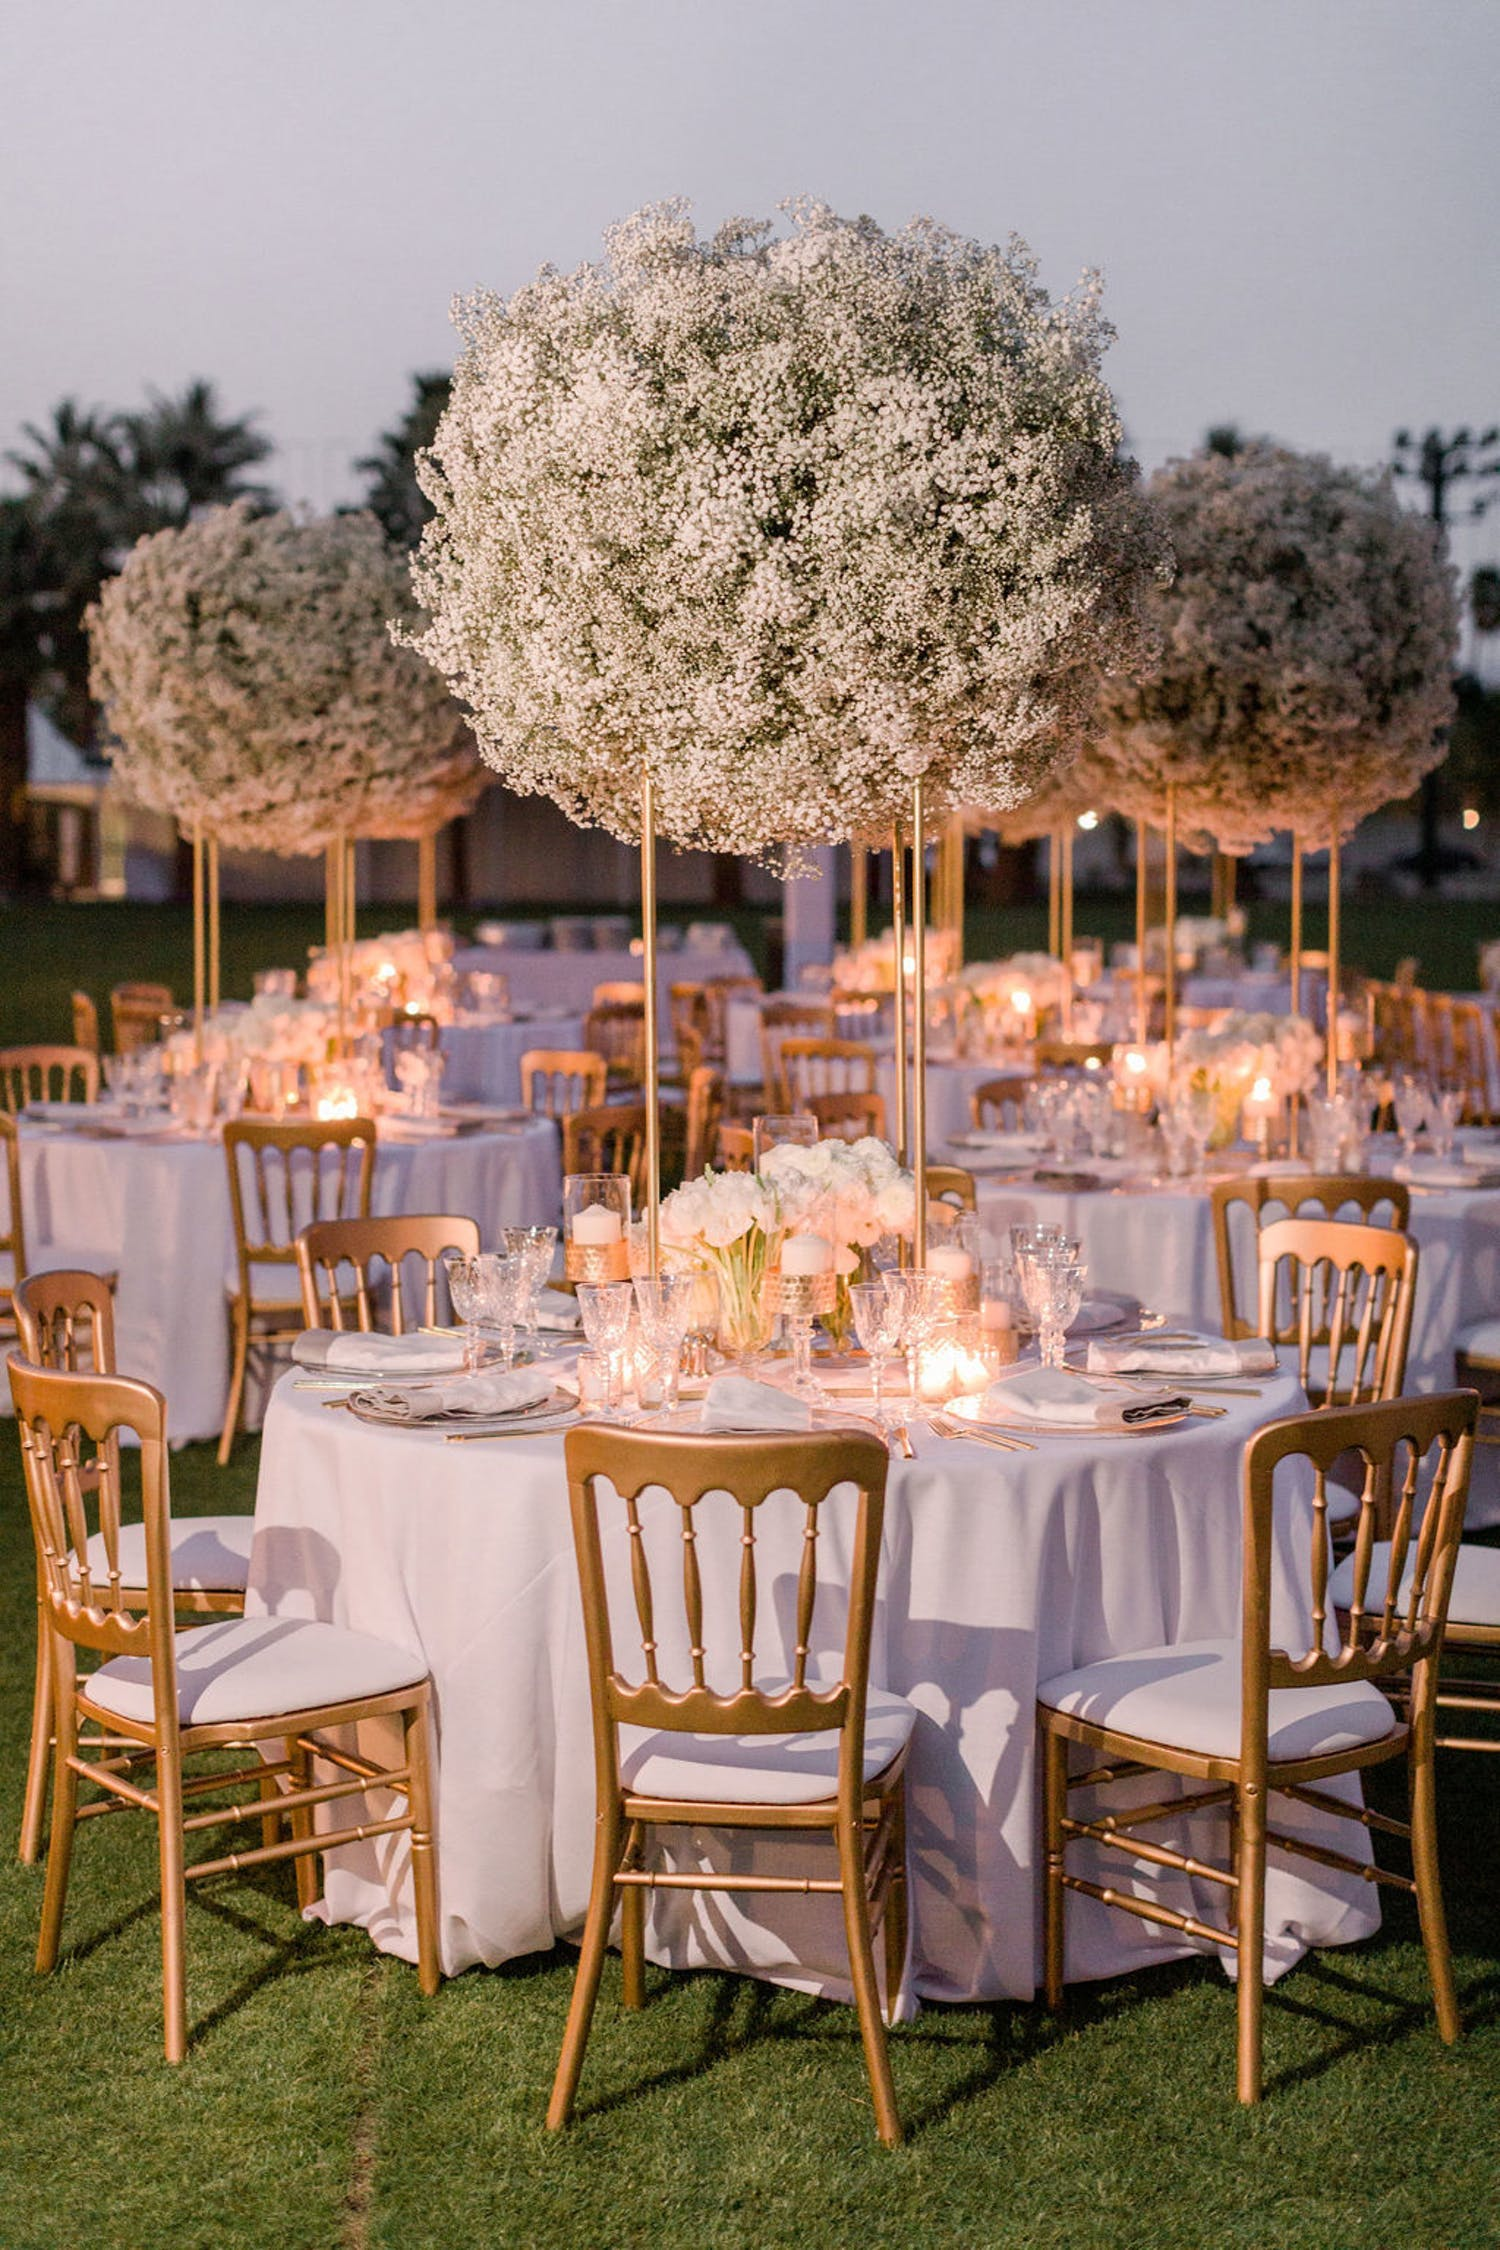 tables with towering baby's breath floral centerpieces